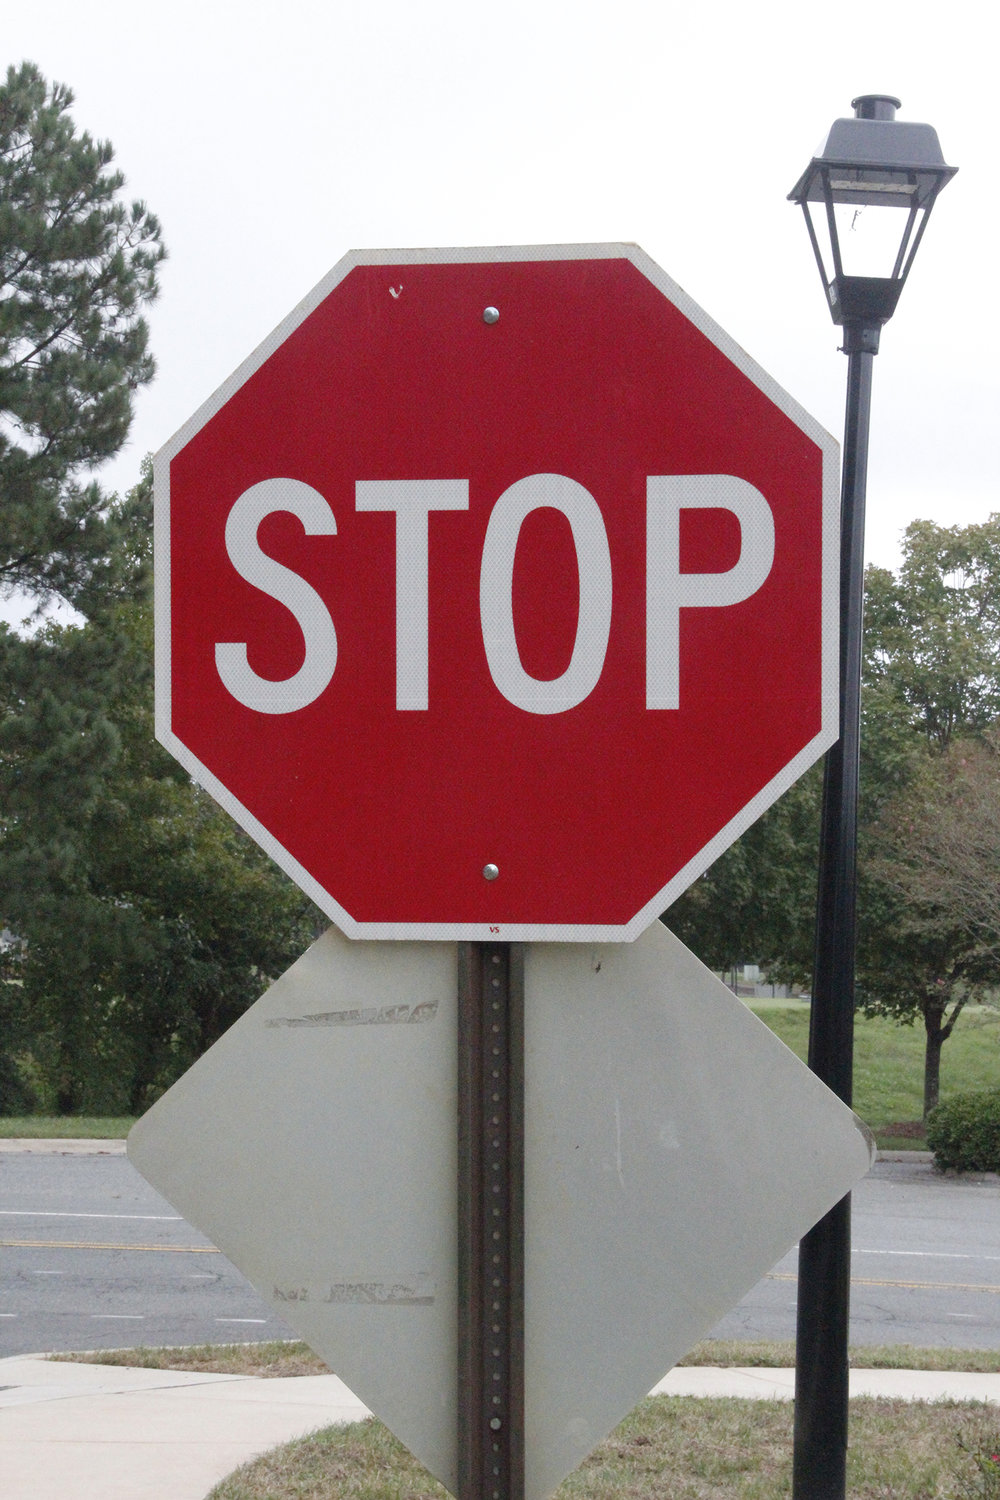 Need a stop sign replaced? Call Public Works or NCDOT.